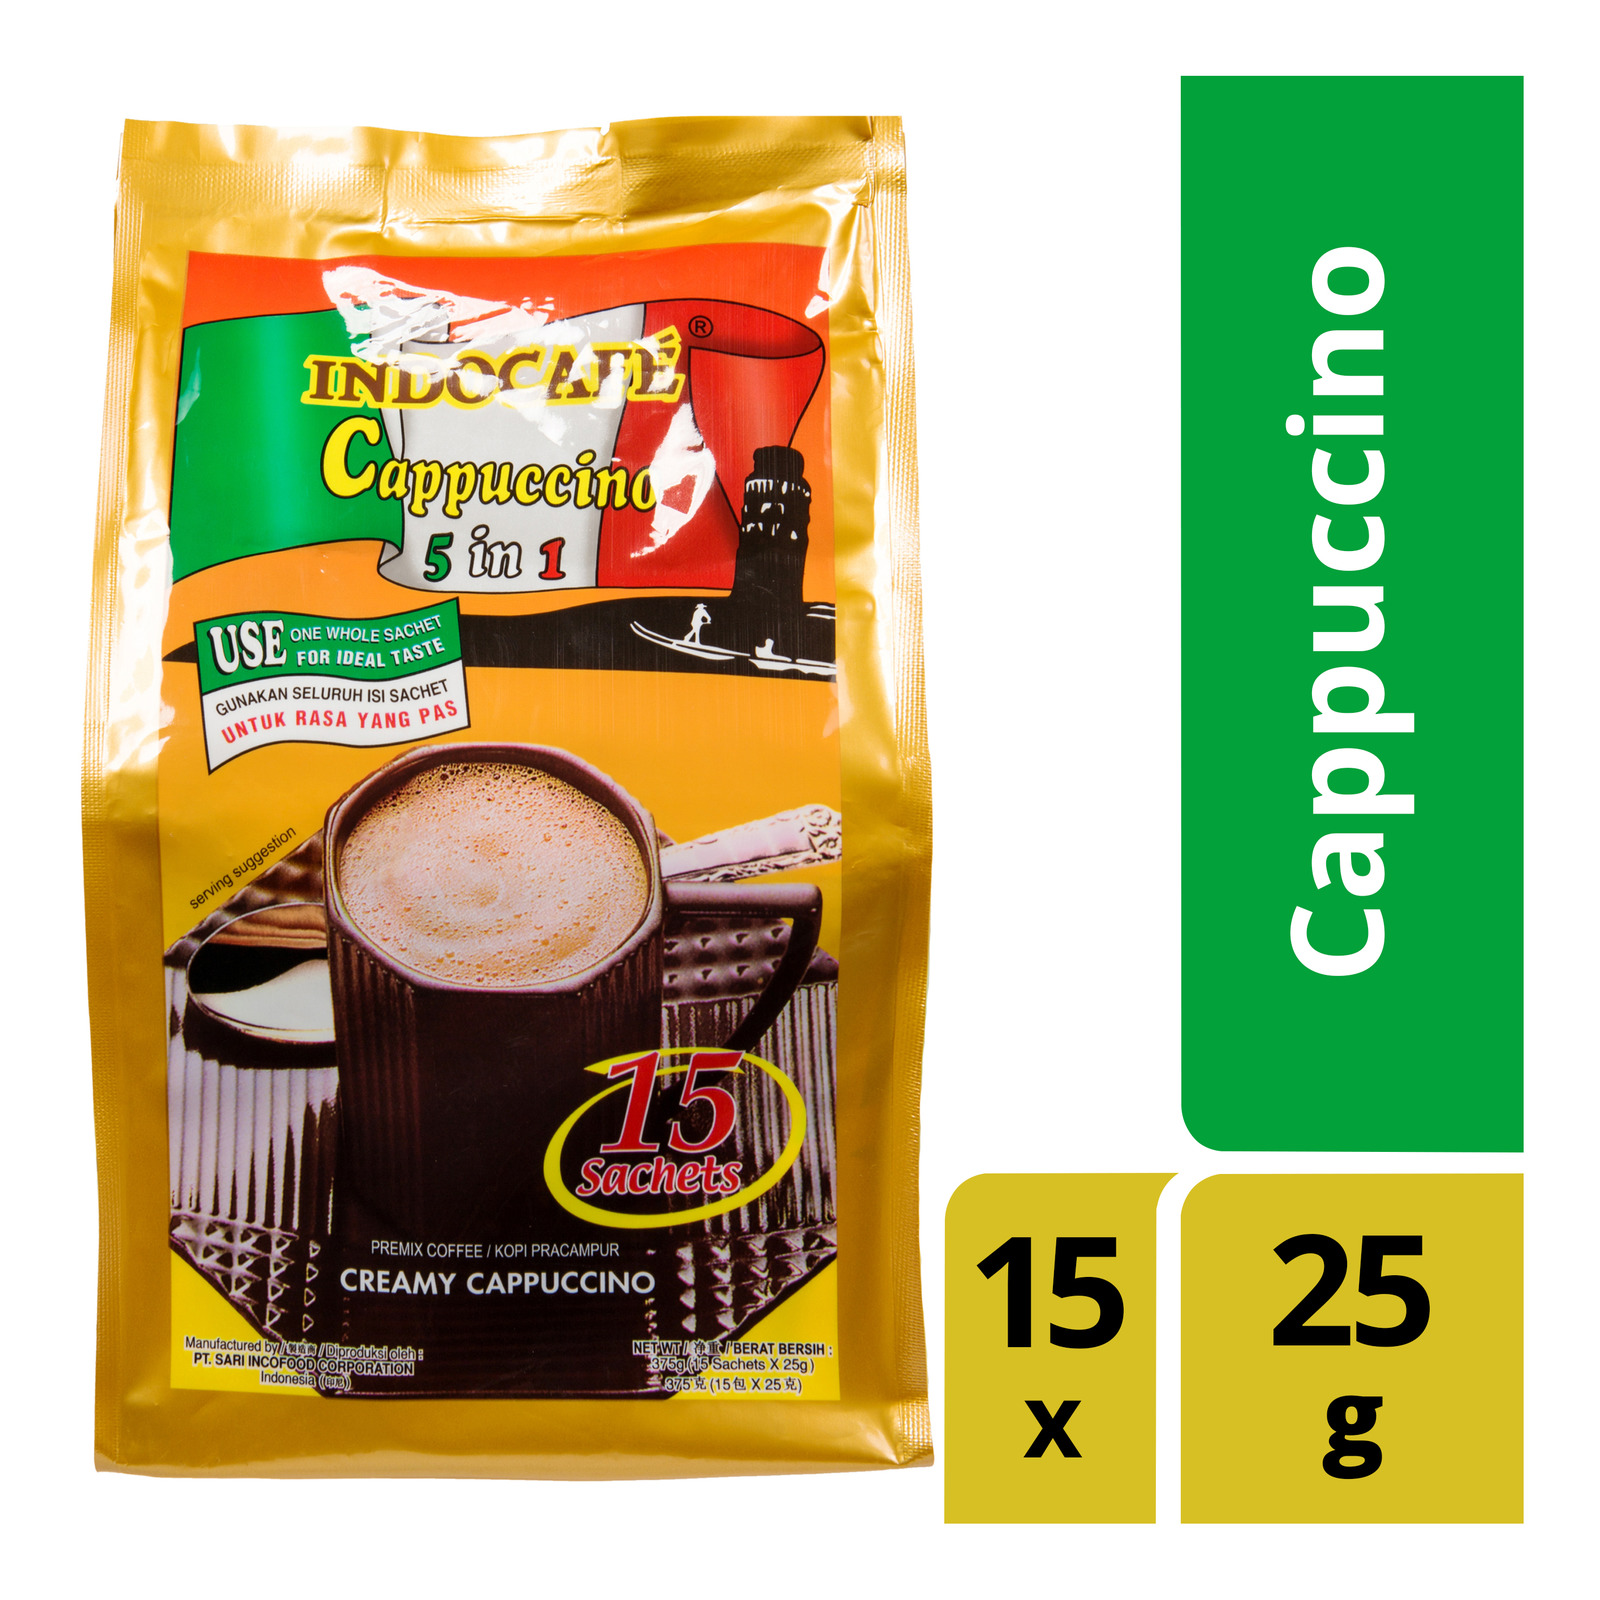 Indocafe 5 in 1 Instant Coffee - Cappuccino